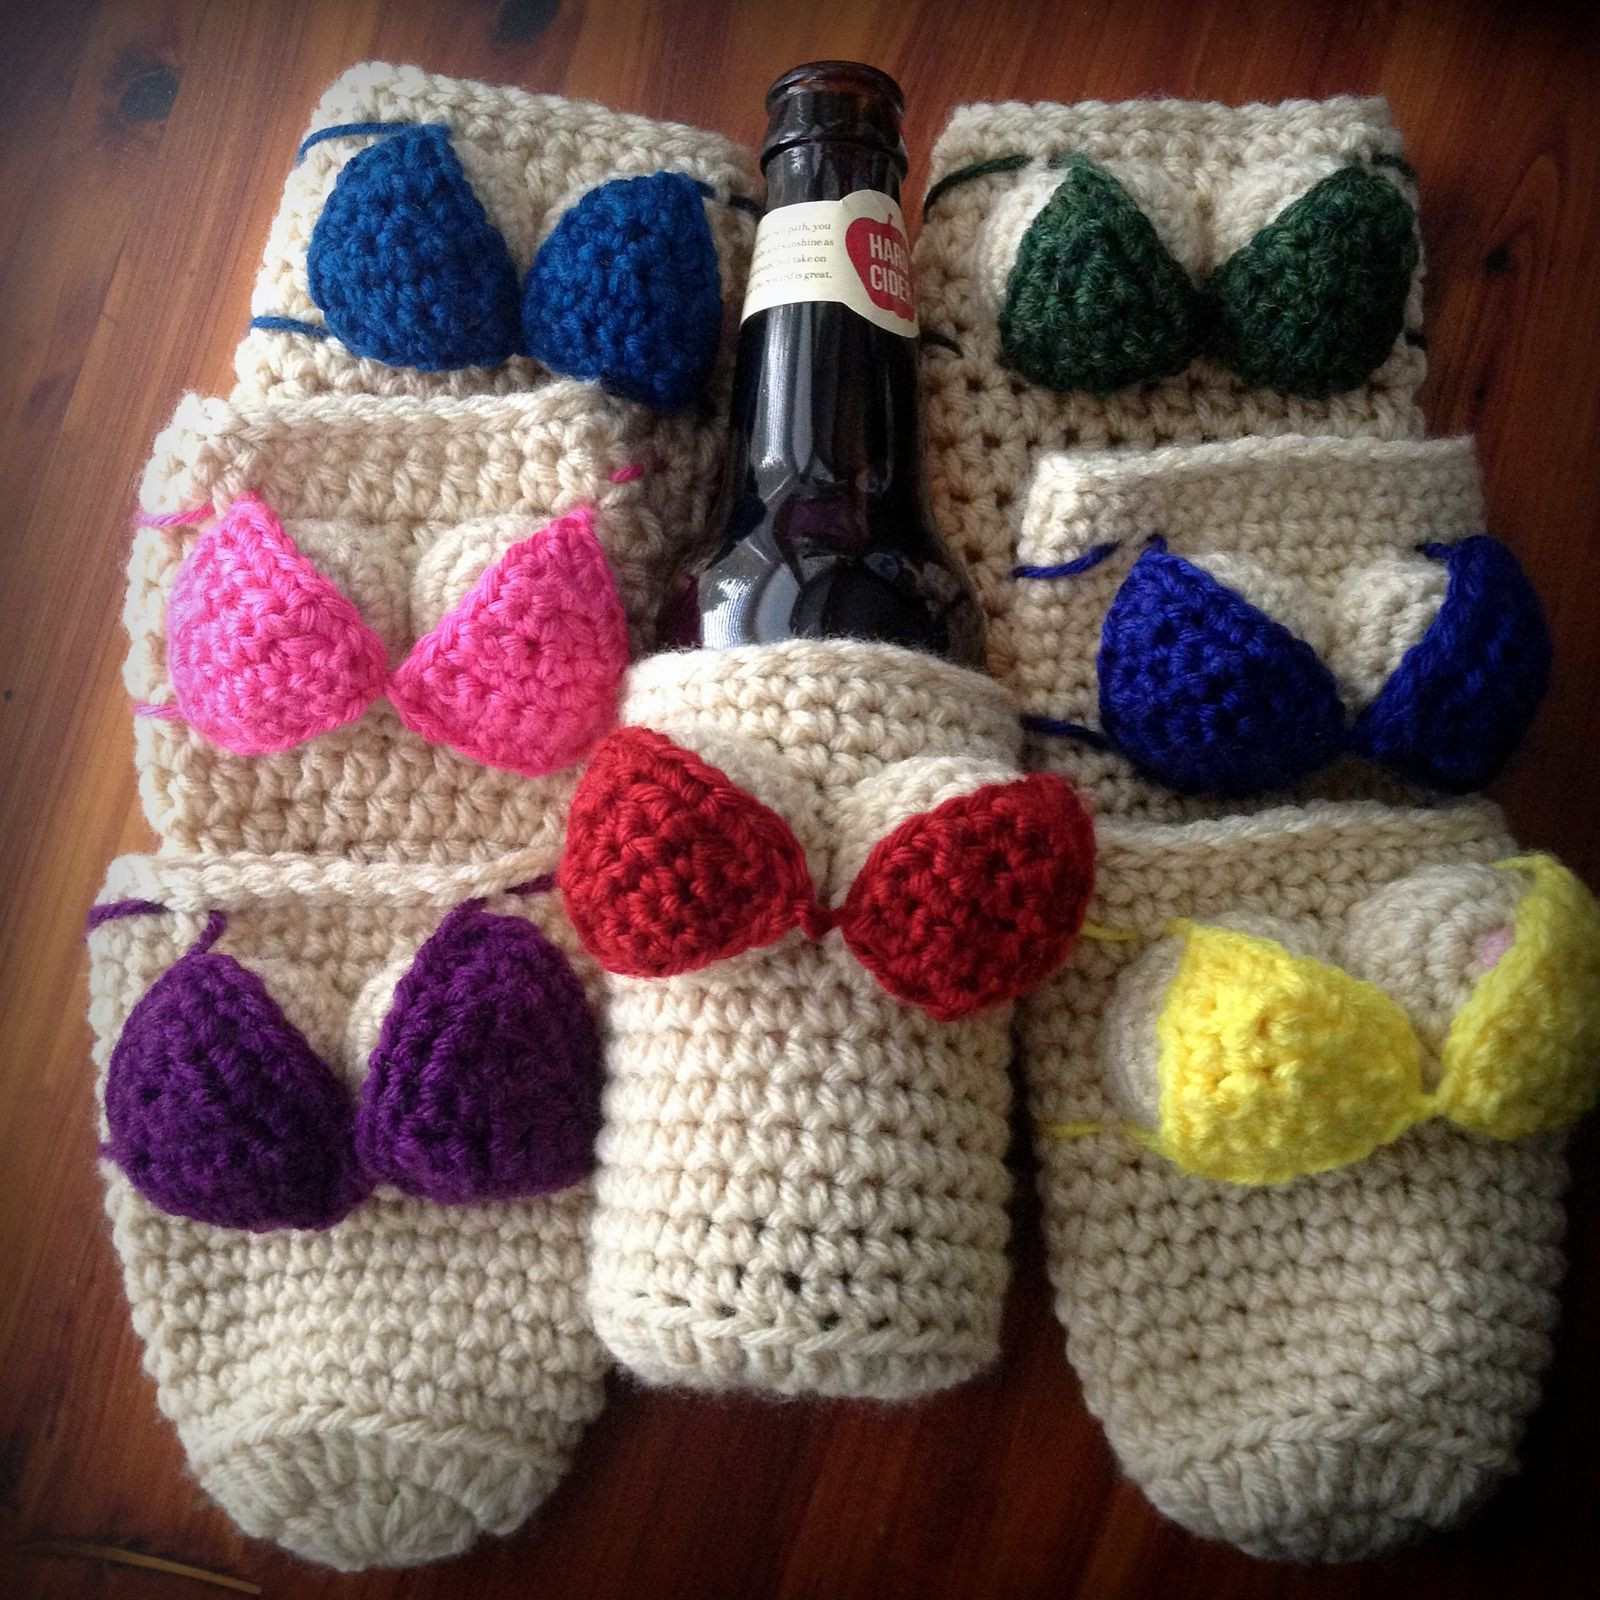 Crochet Gifts for Men Beautiful Booby Cozies Free Pattern Crochet Knitting Of Great 49 Pictures Crochet Gifts for Men